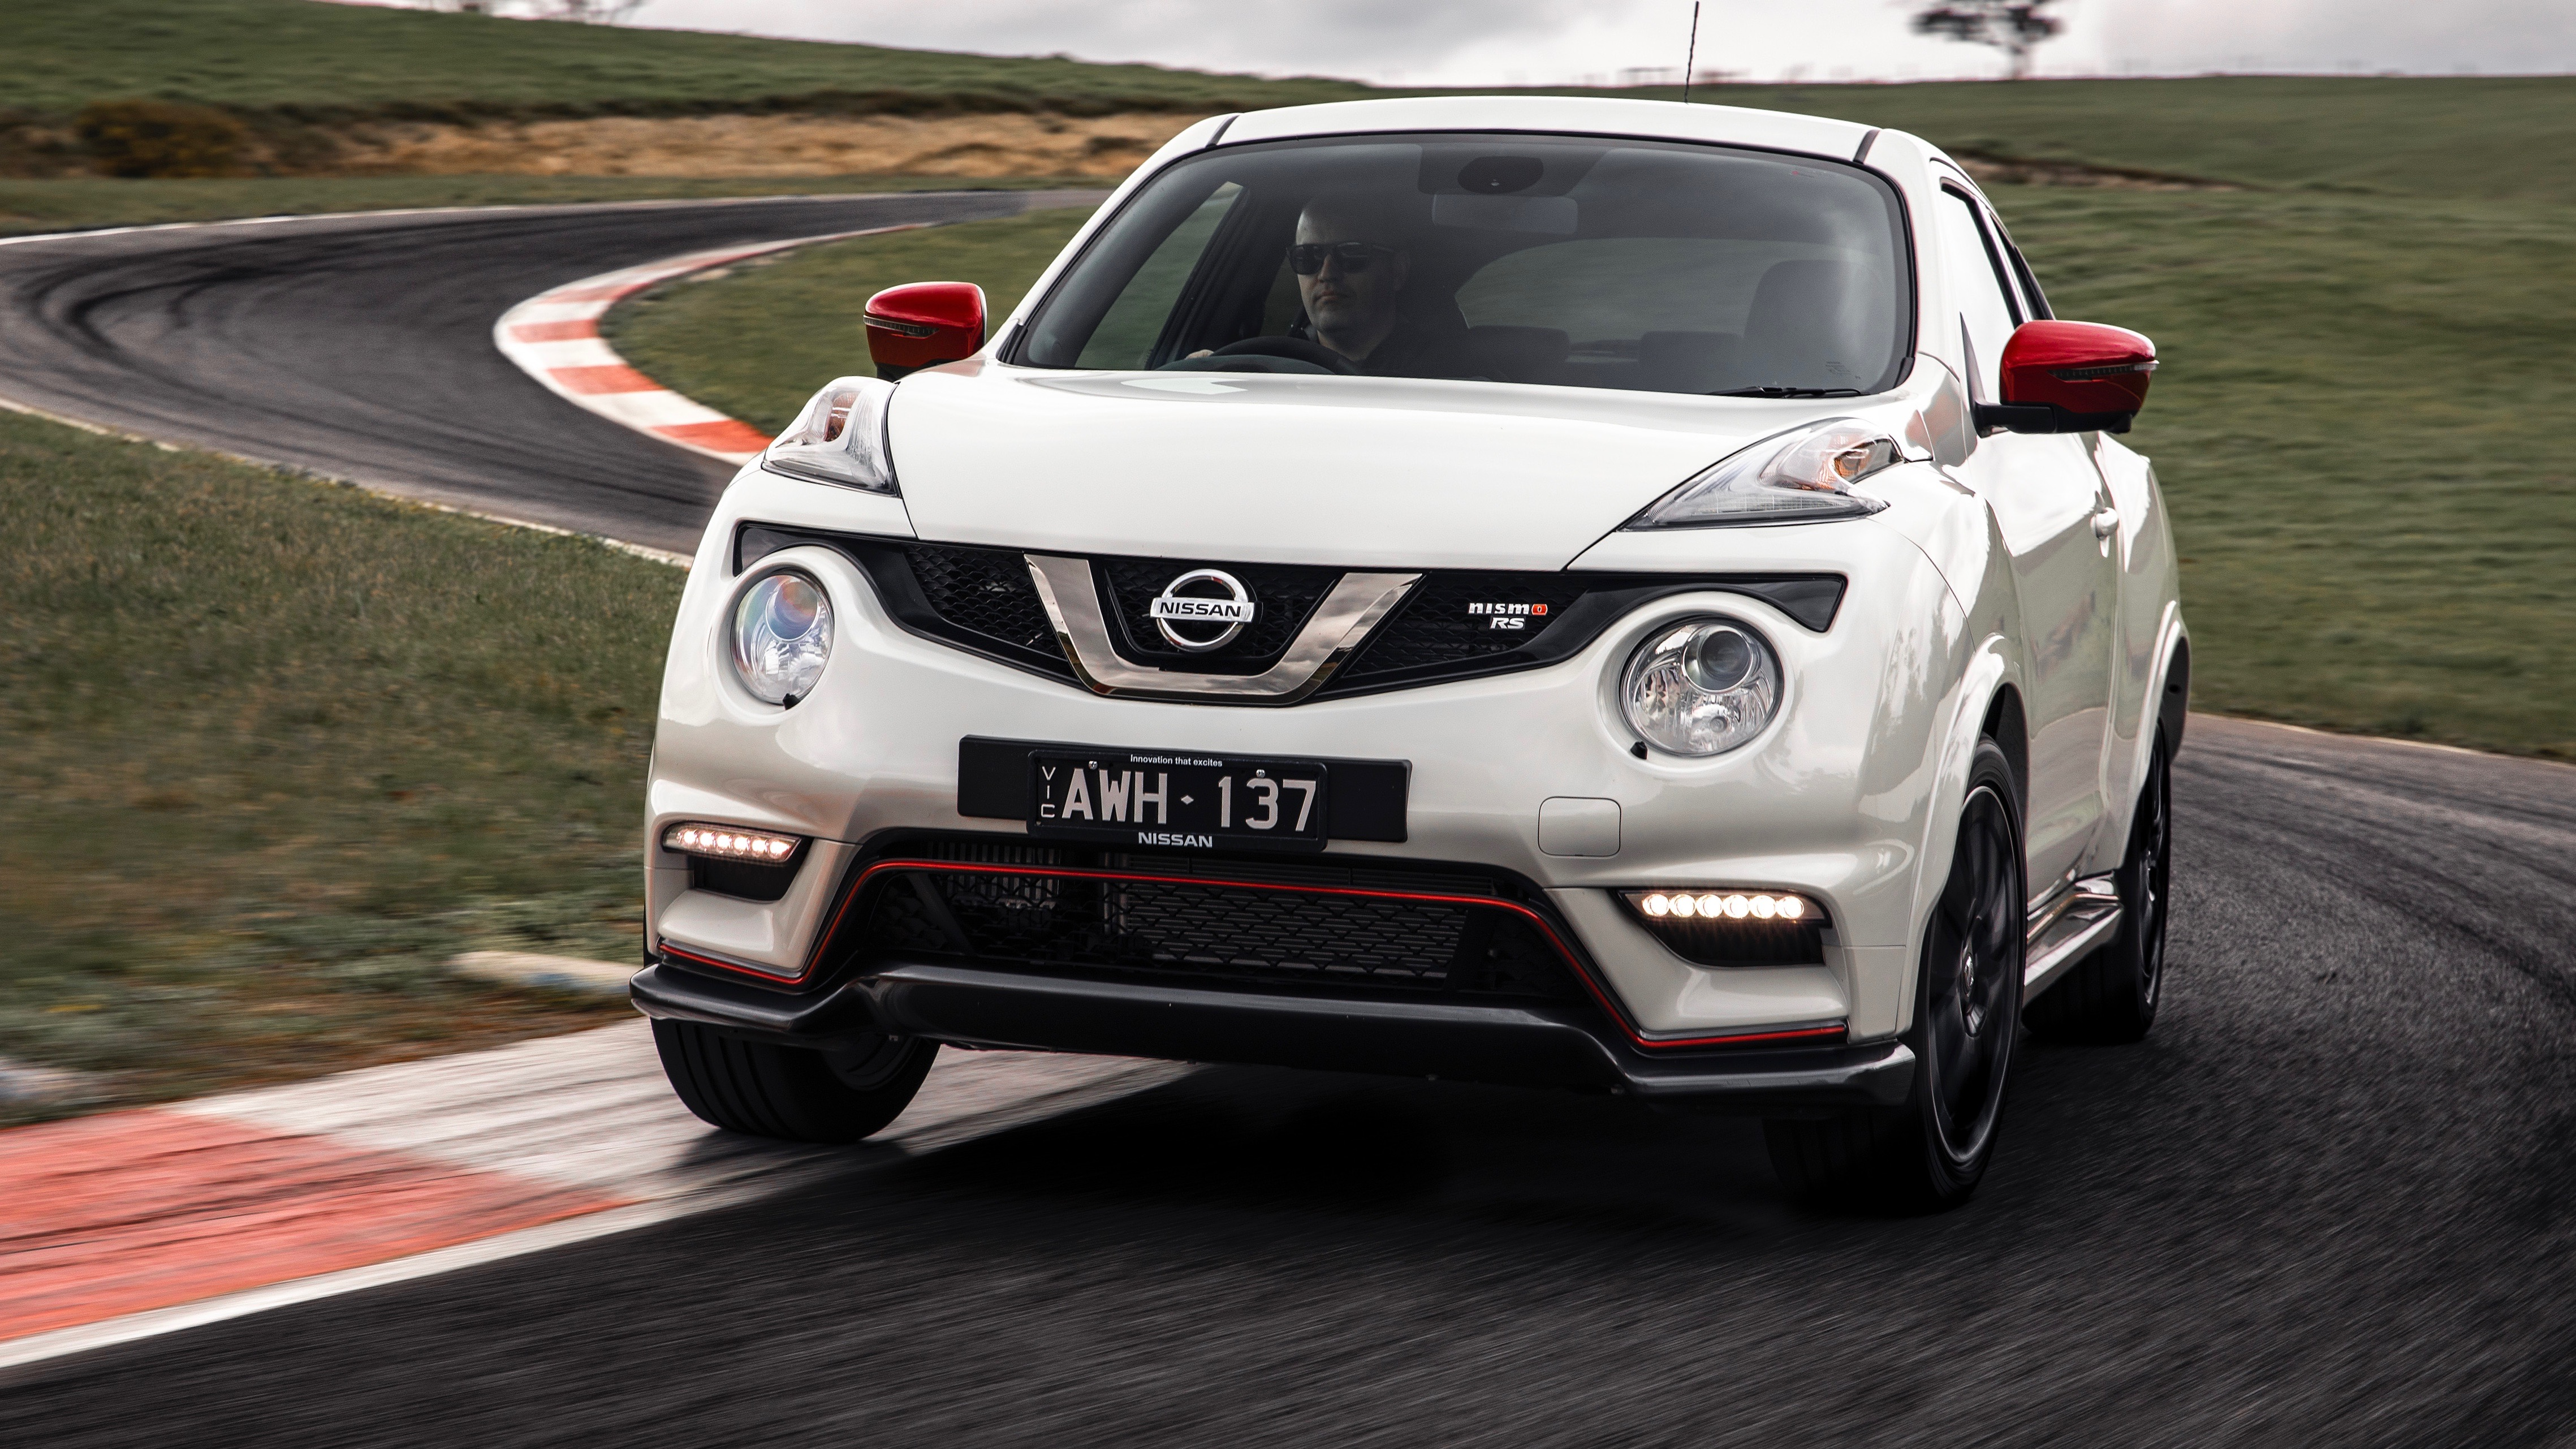 2018 Nissan Juke Nismo RS she says, he says review